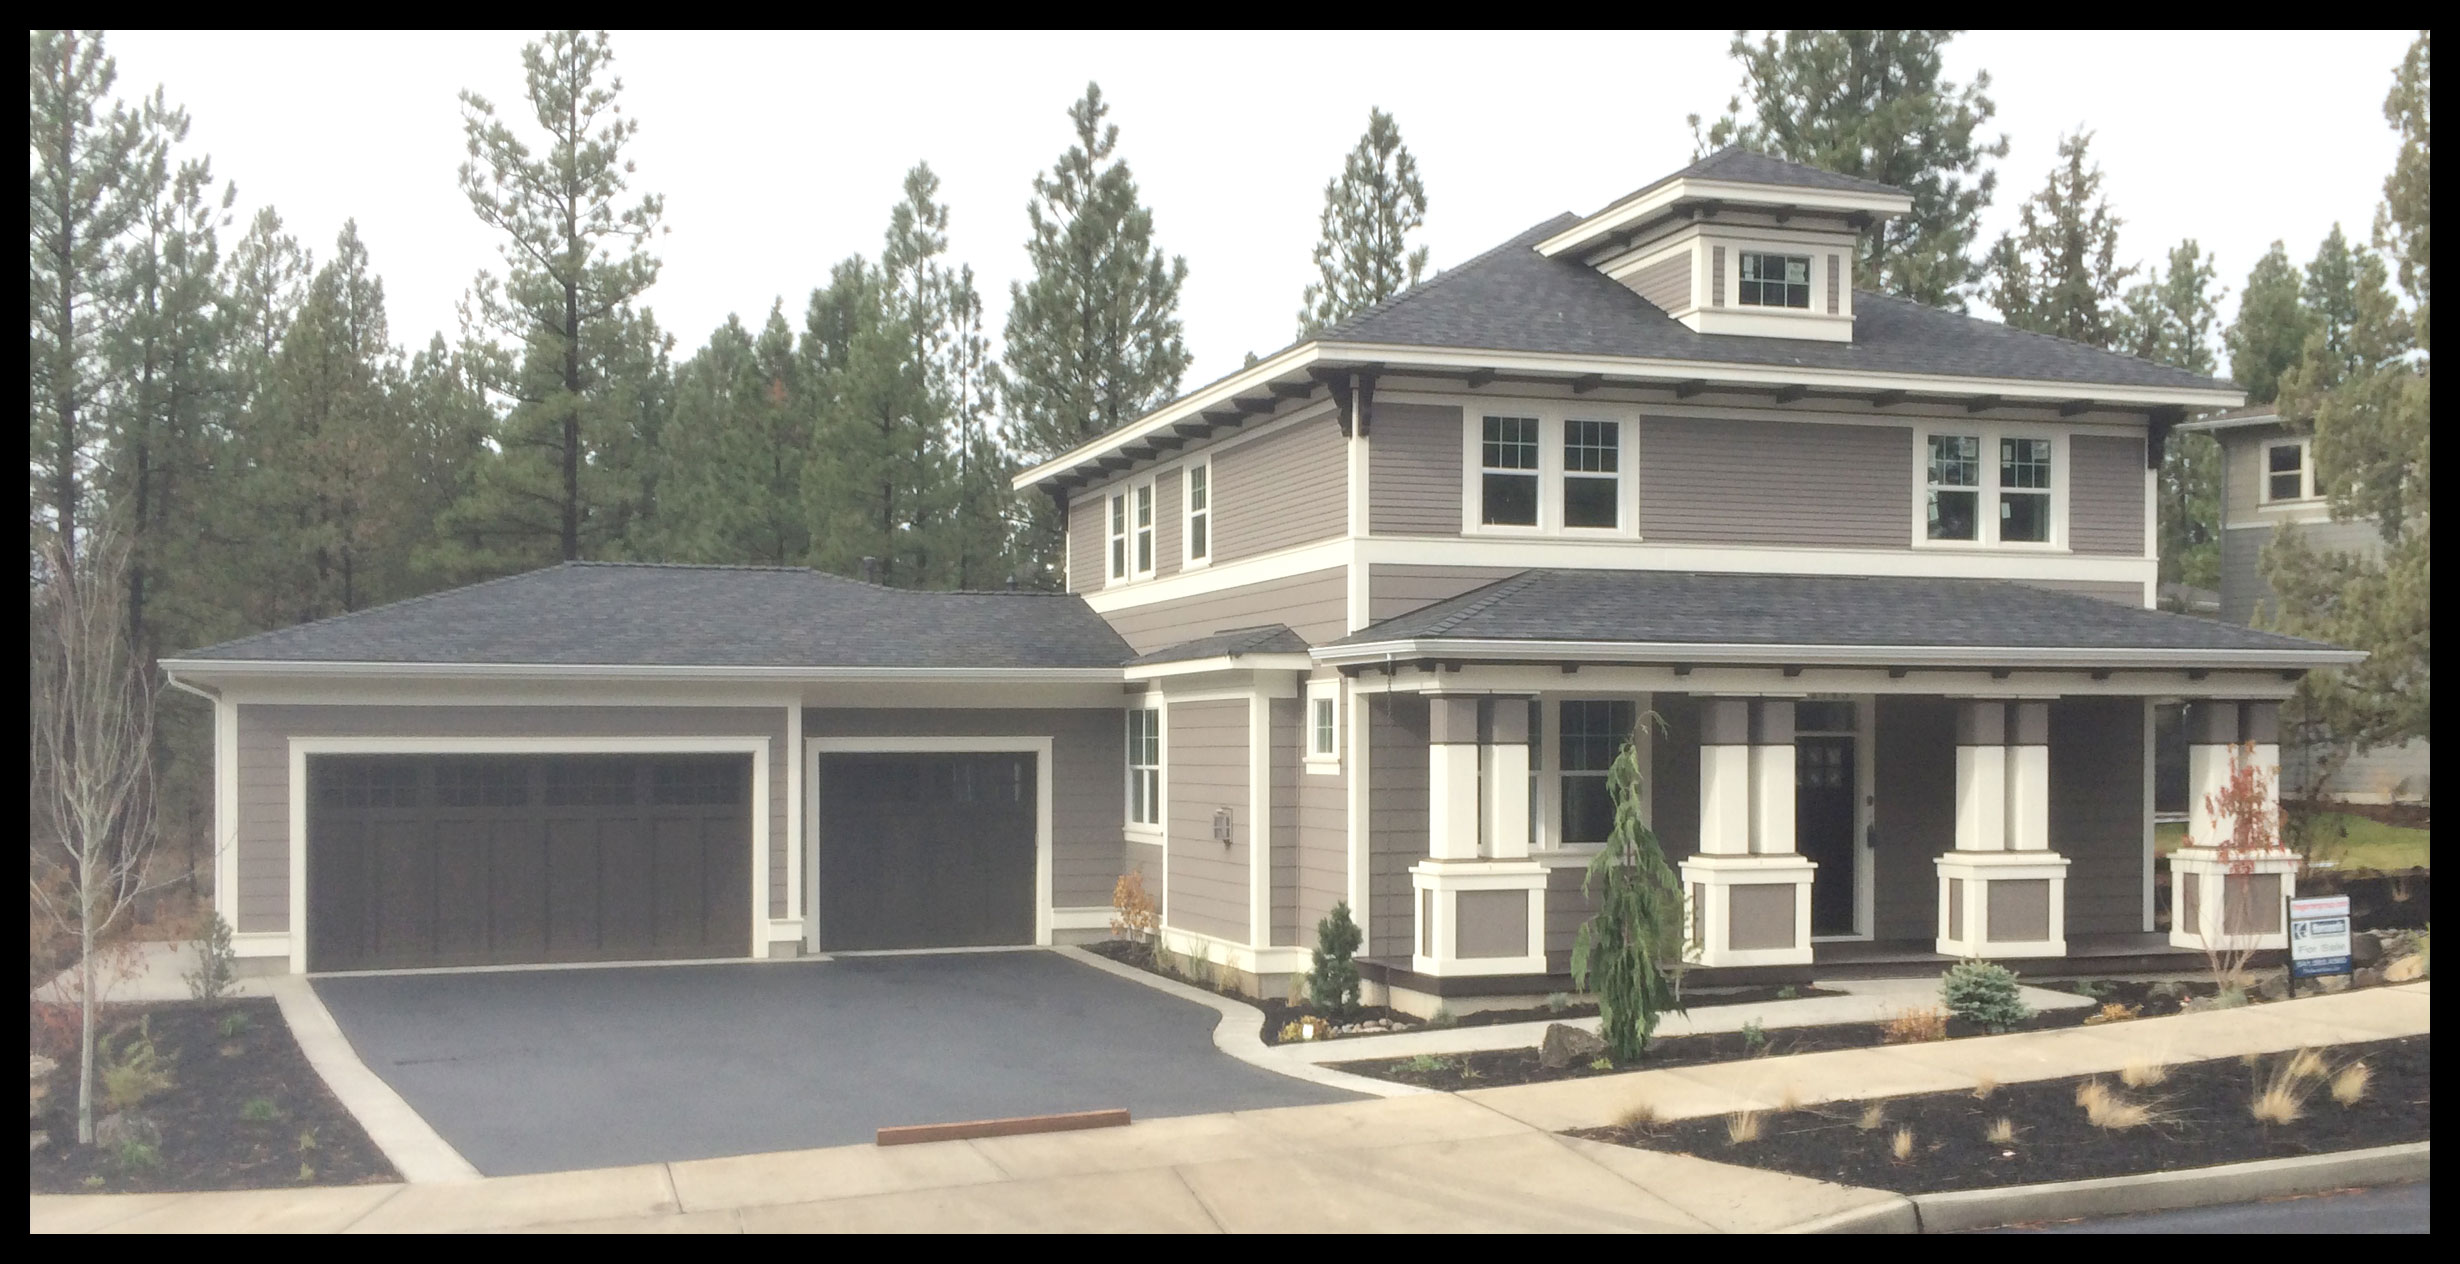 Lot 1 sold skylight homebuilders for On your lot builders oregon